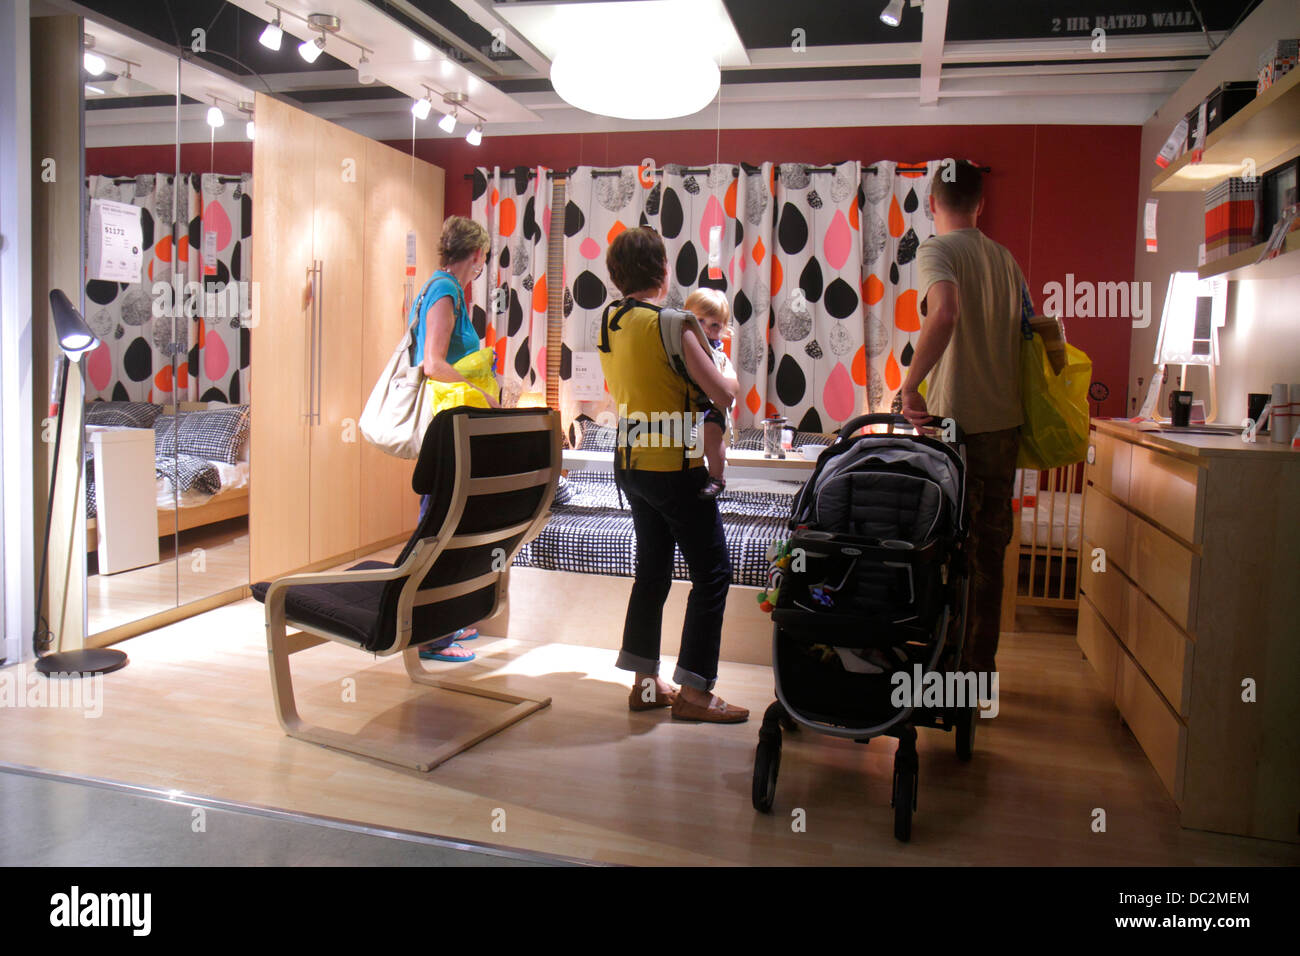 Shopping For Kids Bedroom Furniture High Resolution Stock Photography And Images Alamy